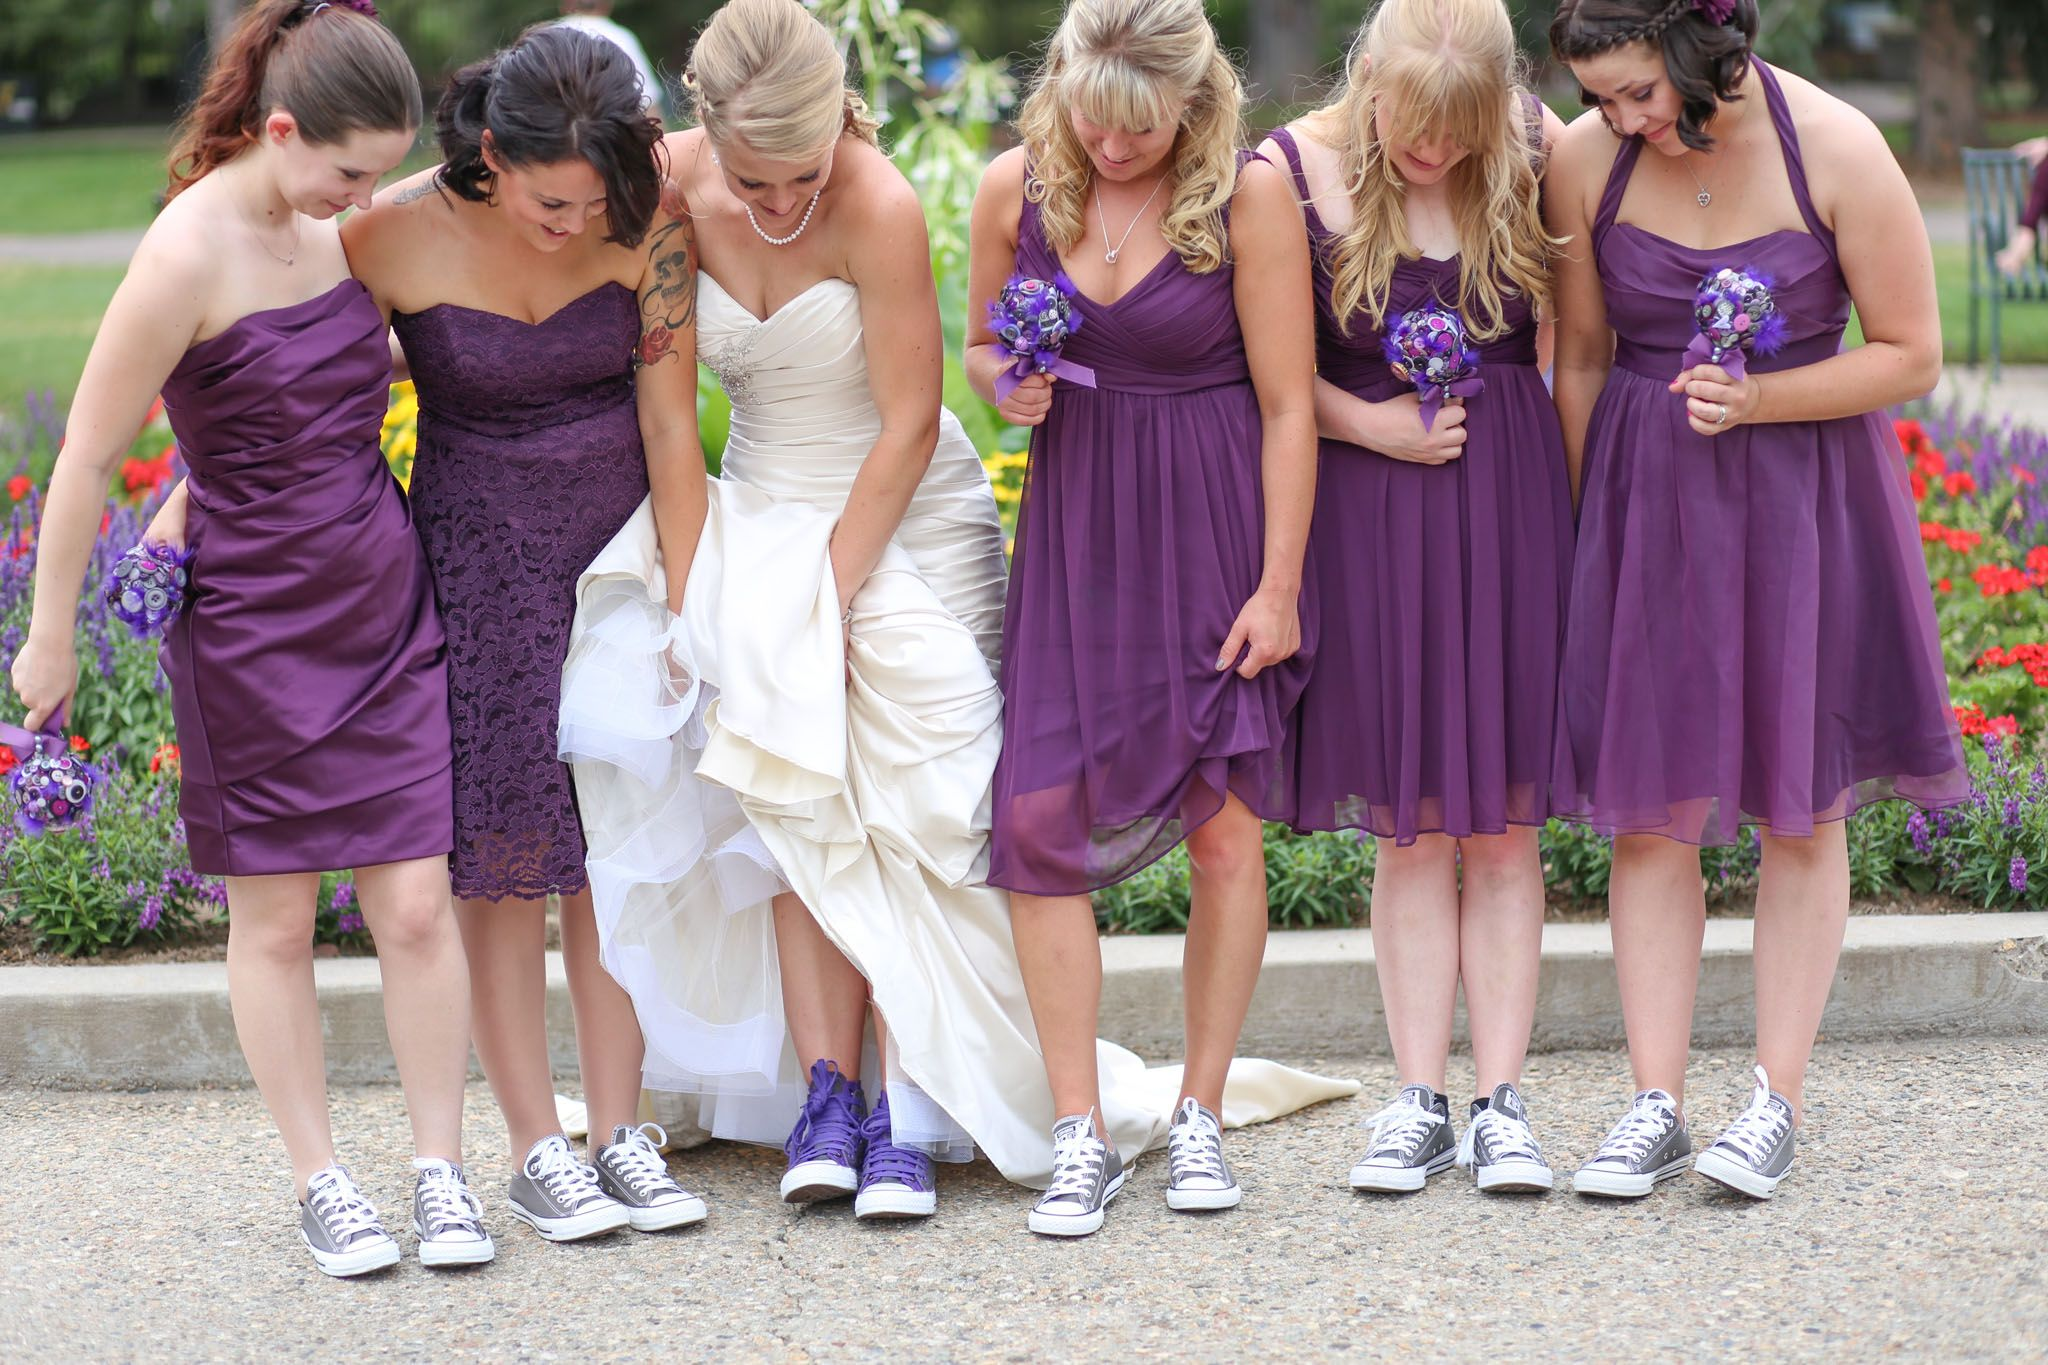 Converse wedding shoes!! Yes please!! The most comfortable